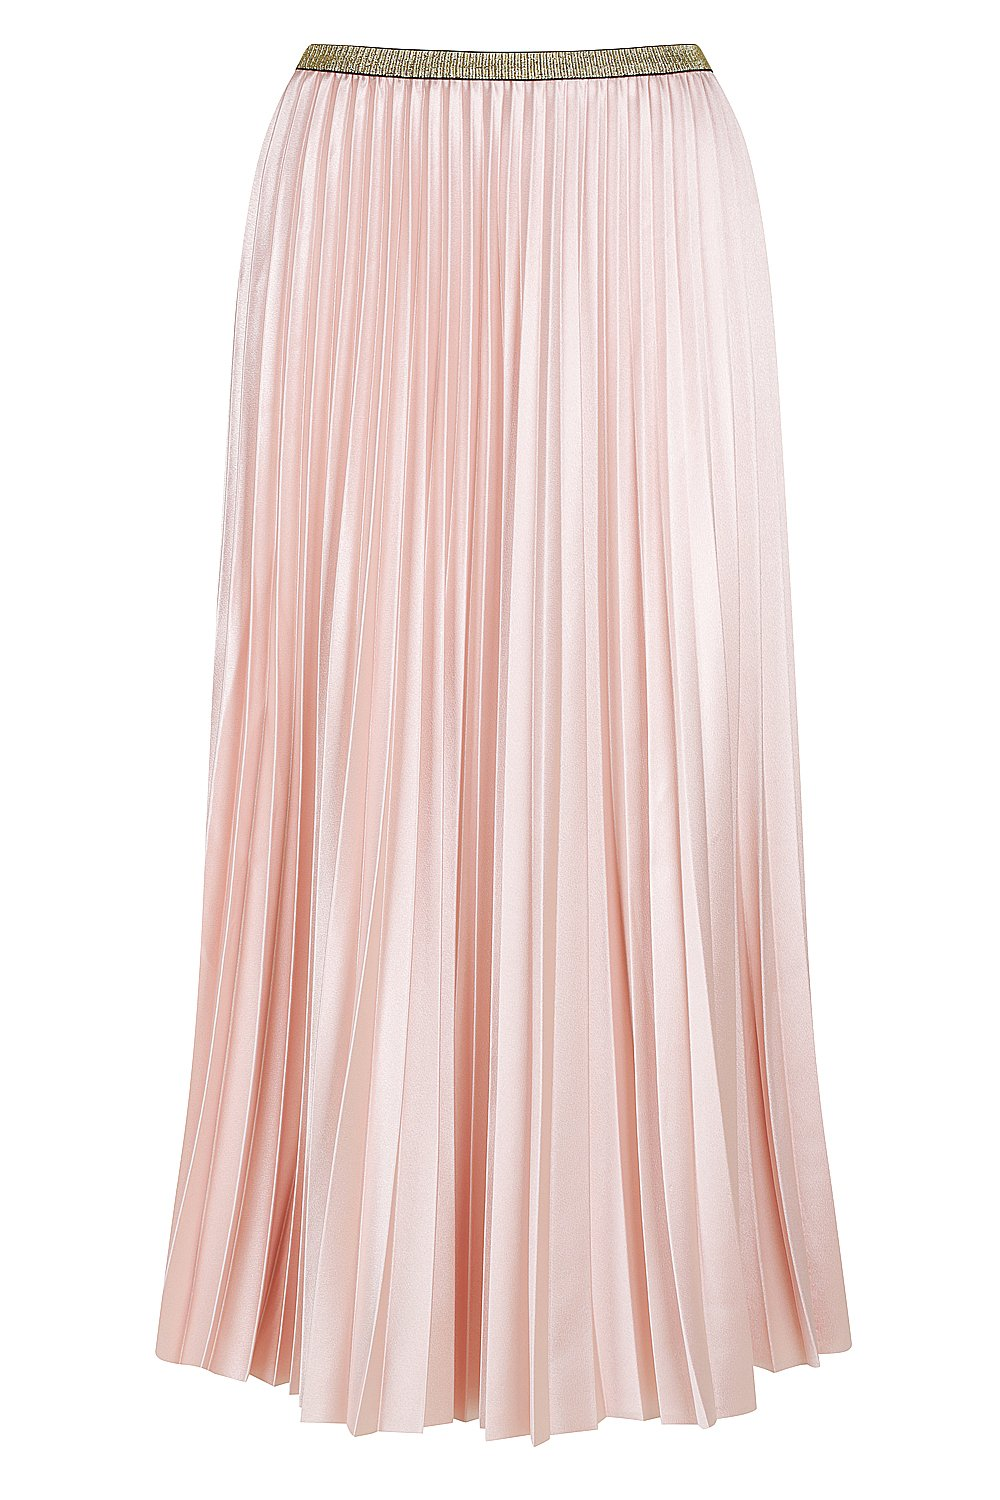 Bande Studio Pleated Satin Skirt - Champagne Pink